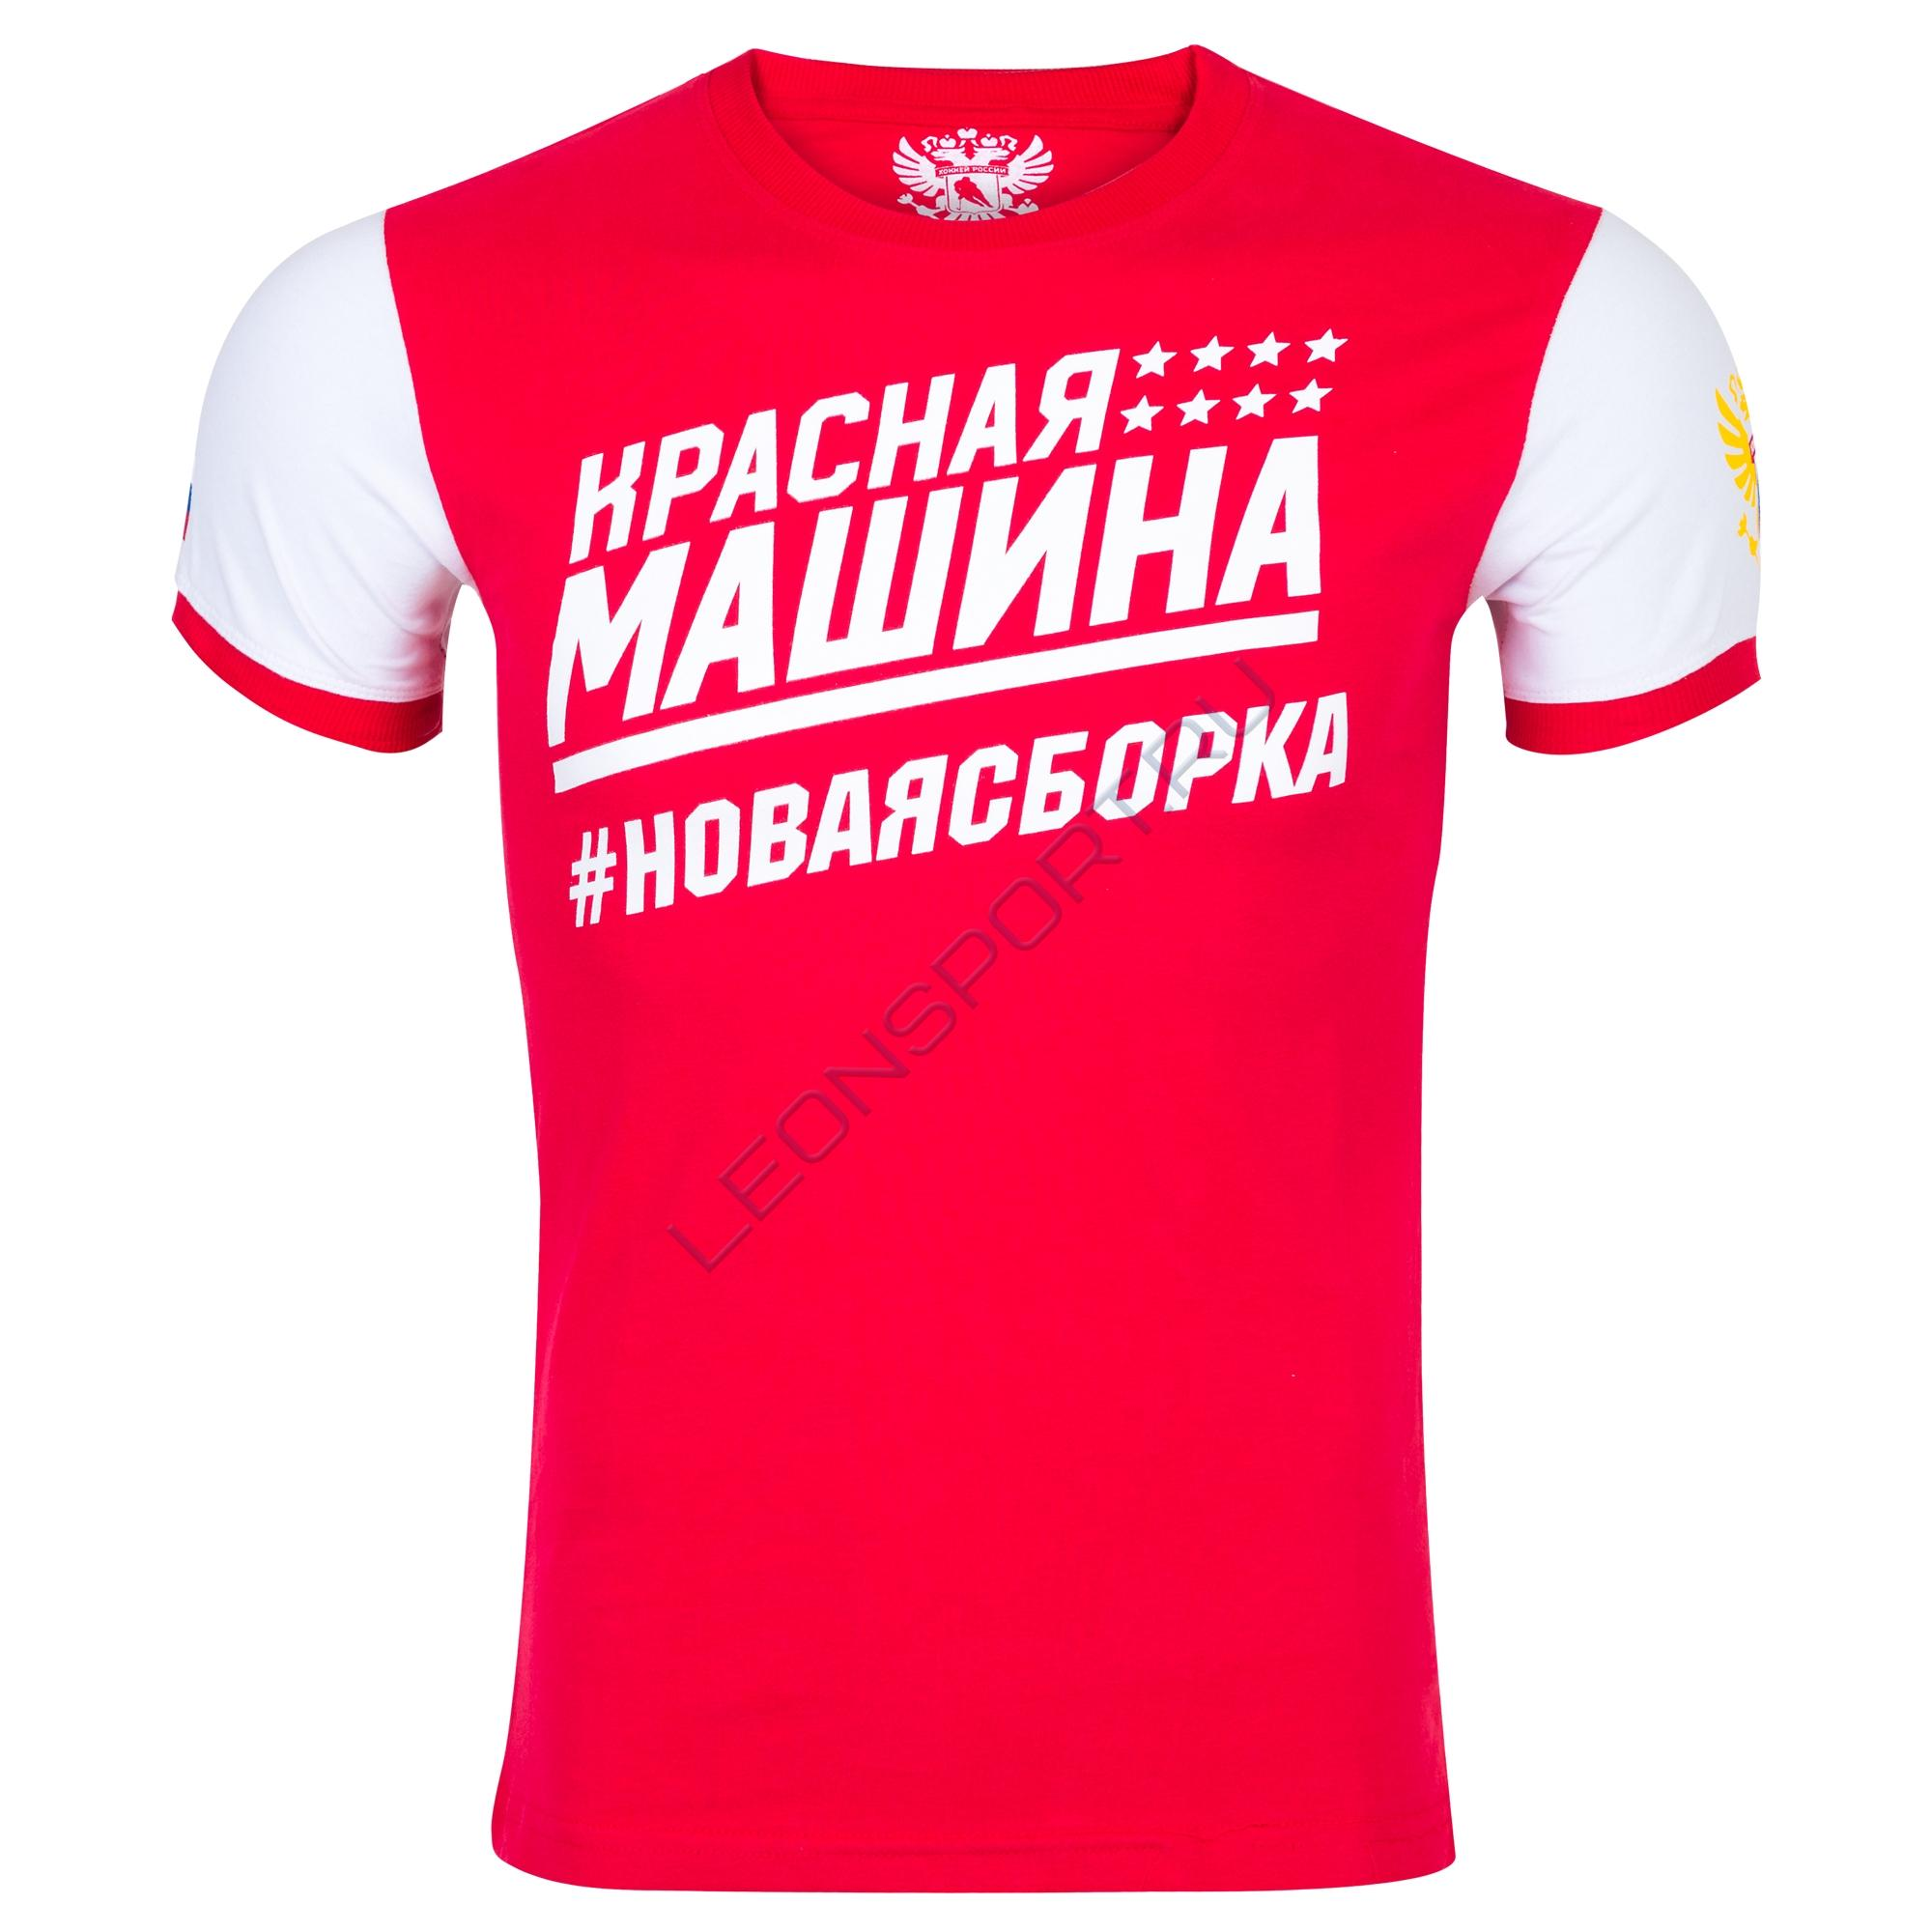 "Футболка женск. RED MACHINE ""Красная машина"" SR"